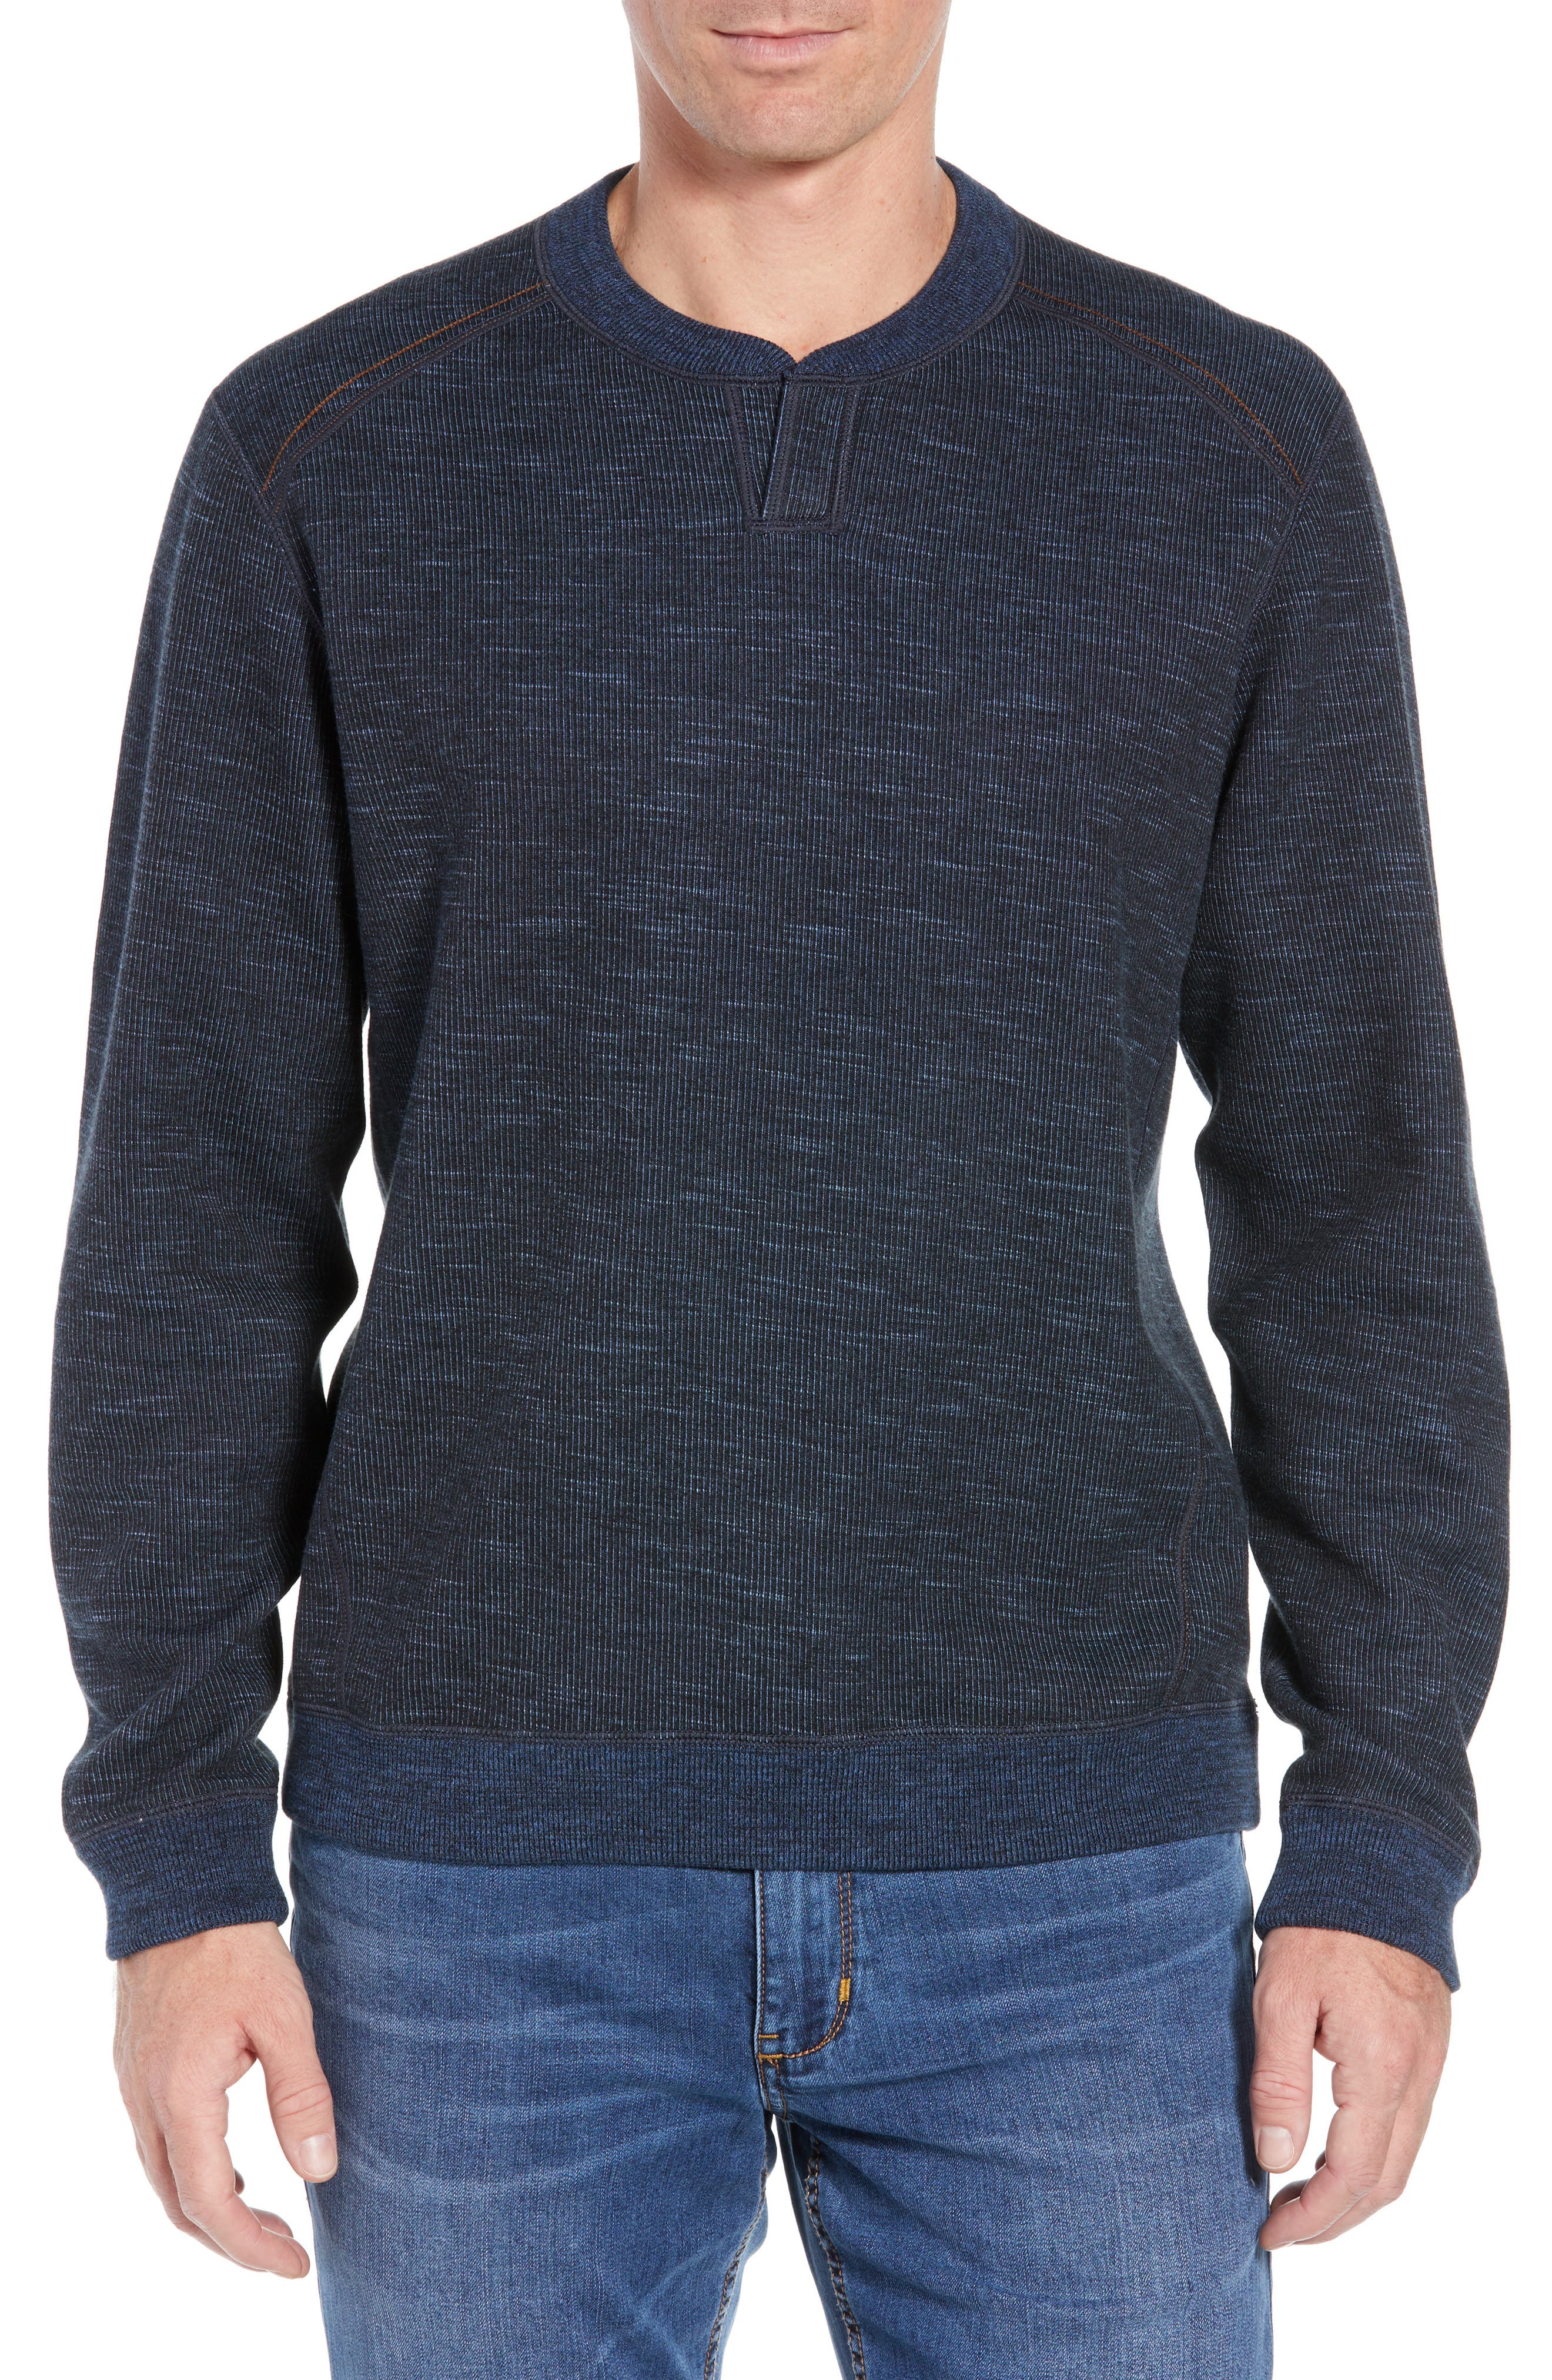 Flipsider Abaco Pullover,                             Main thumbnail 1, color,                             JET BLACK